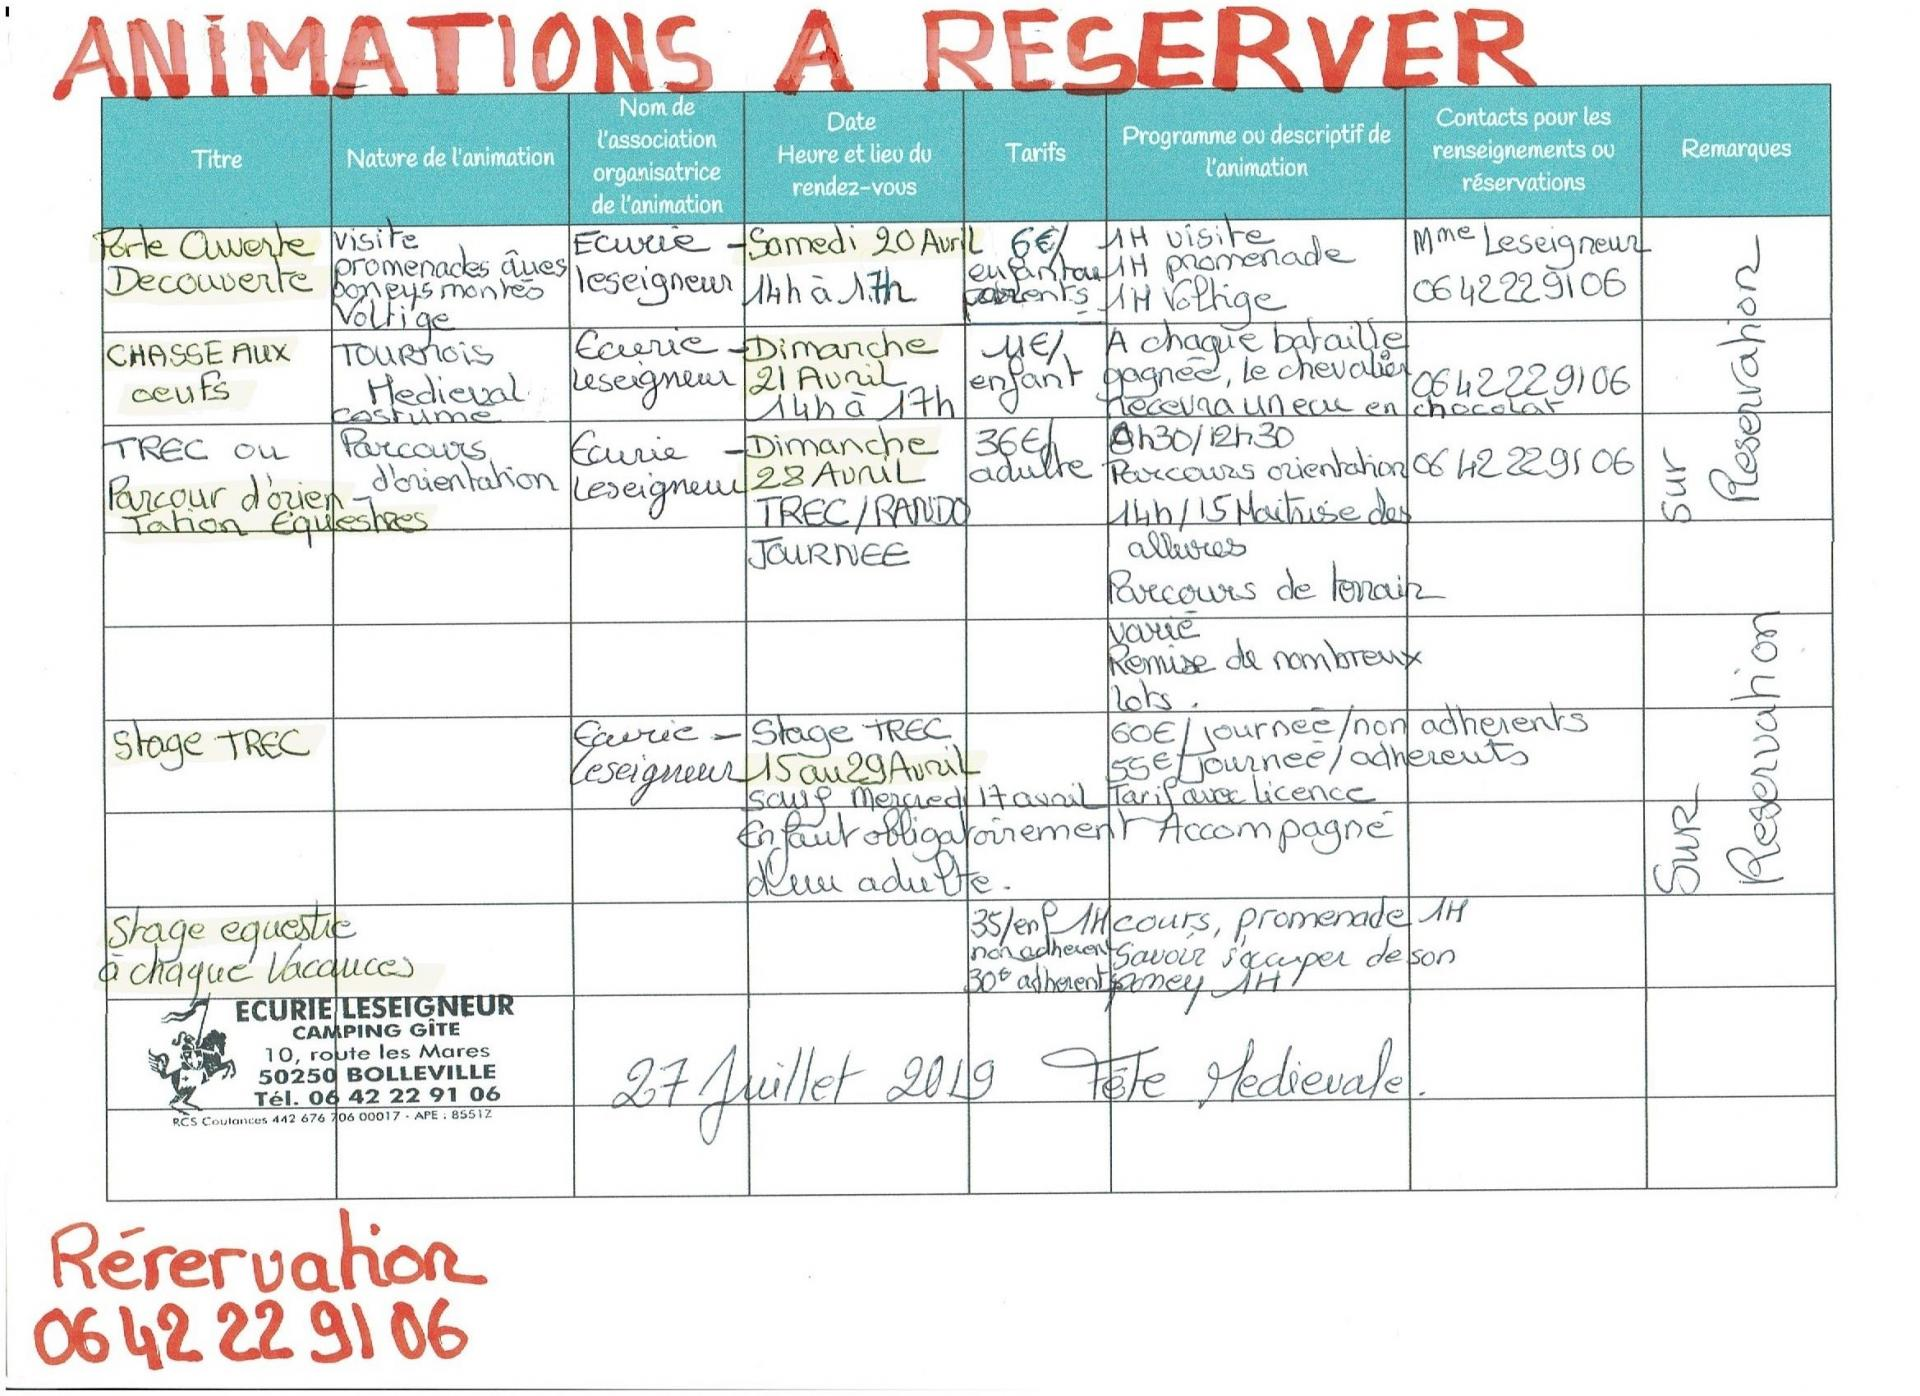 Animation a reserver